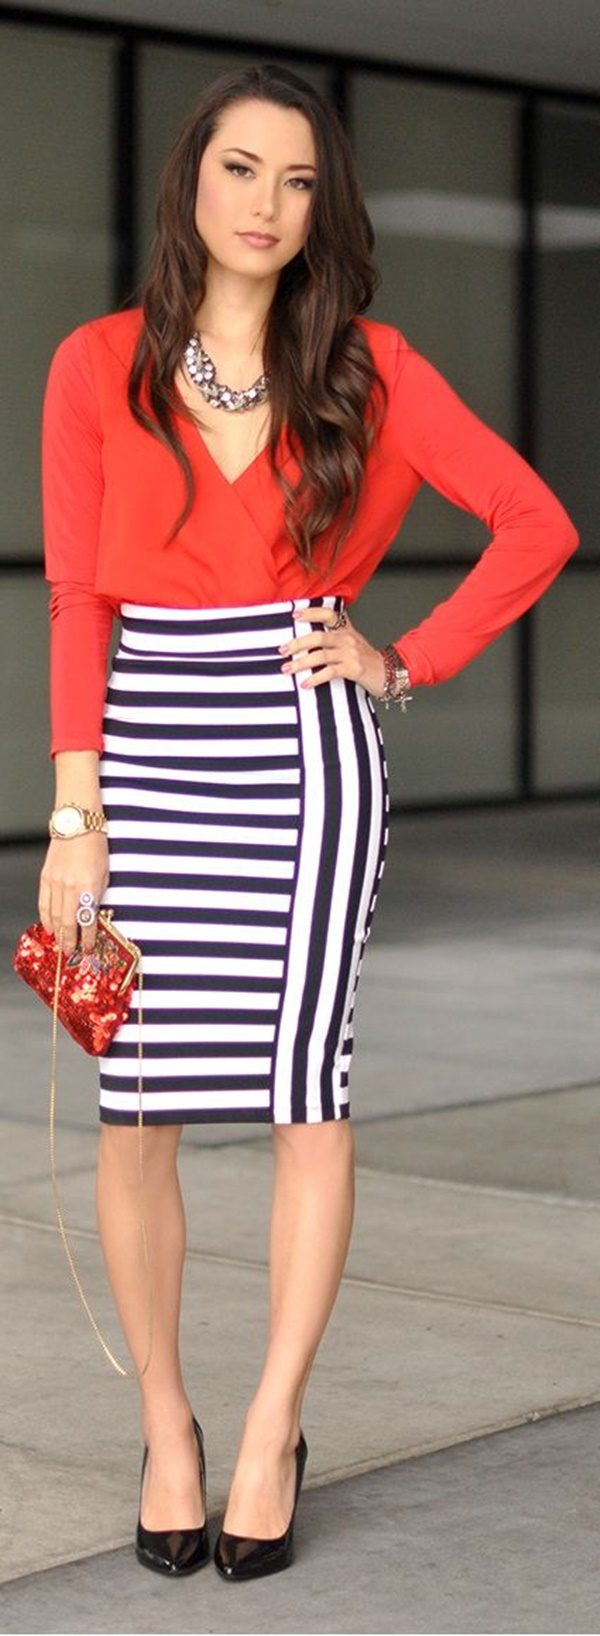 striped skirt outfits (37)